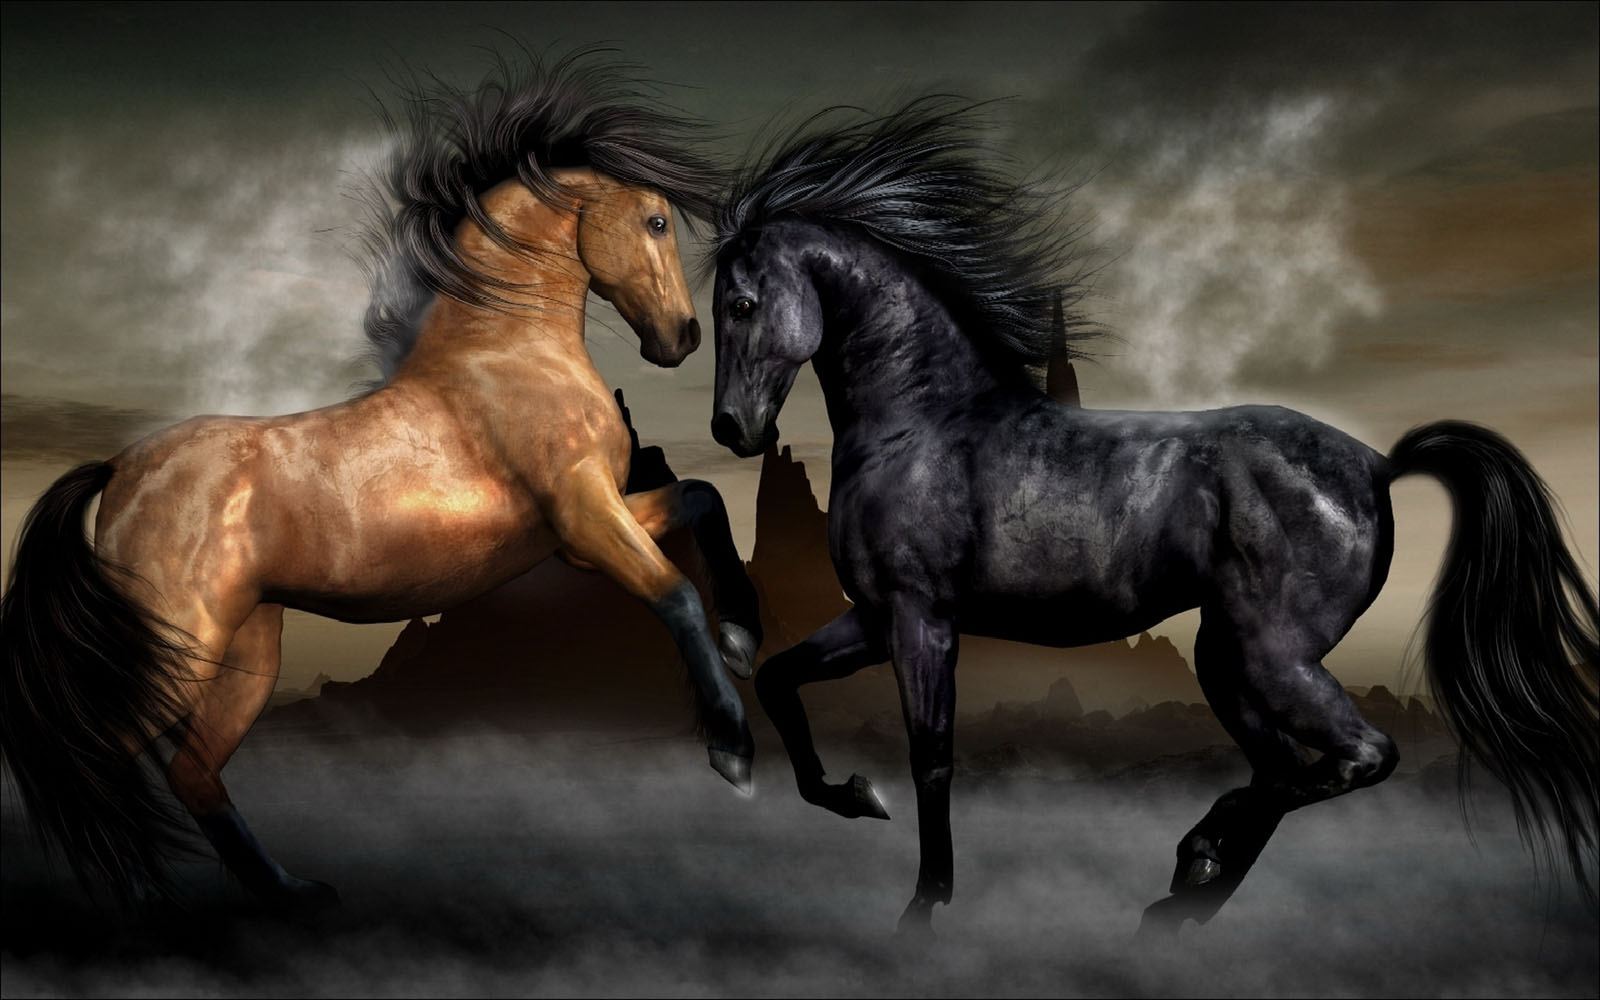 http://webneel.com/wallpaper/sites/default/files/images/05-2013/two-horses-wallpaper.jpg